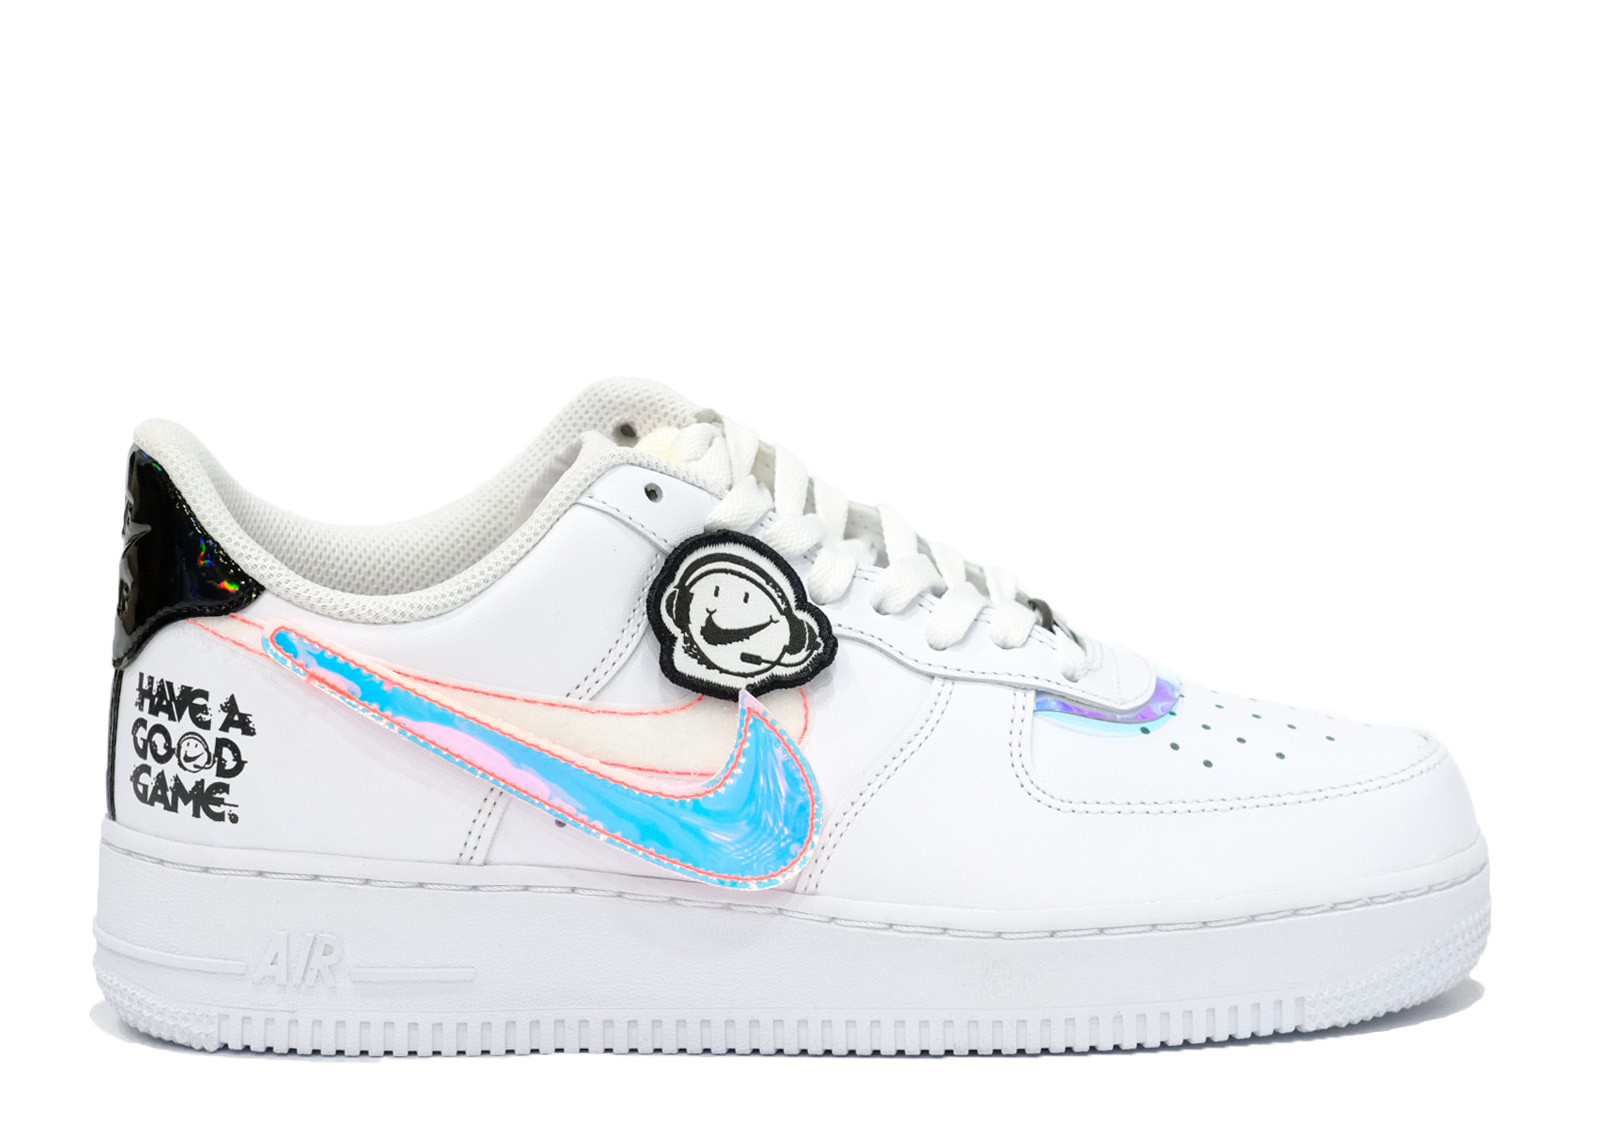 Nike Air Force 1 HAVE A GOOD GAME image 5